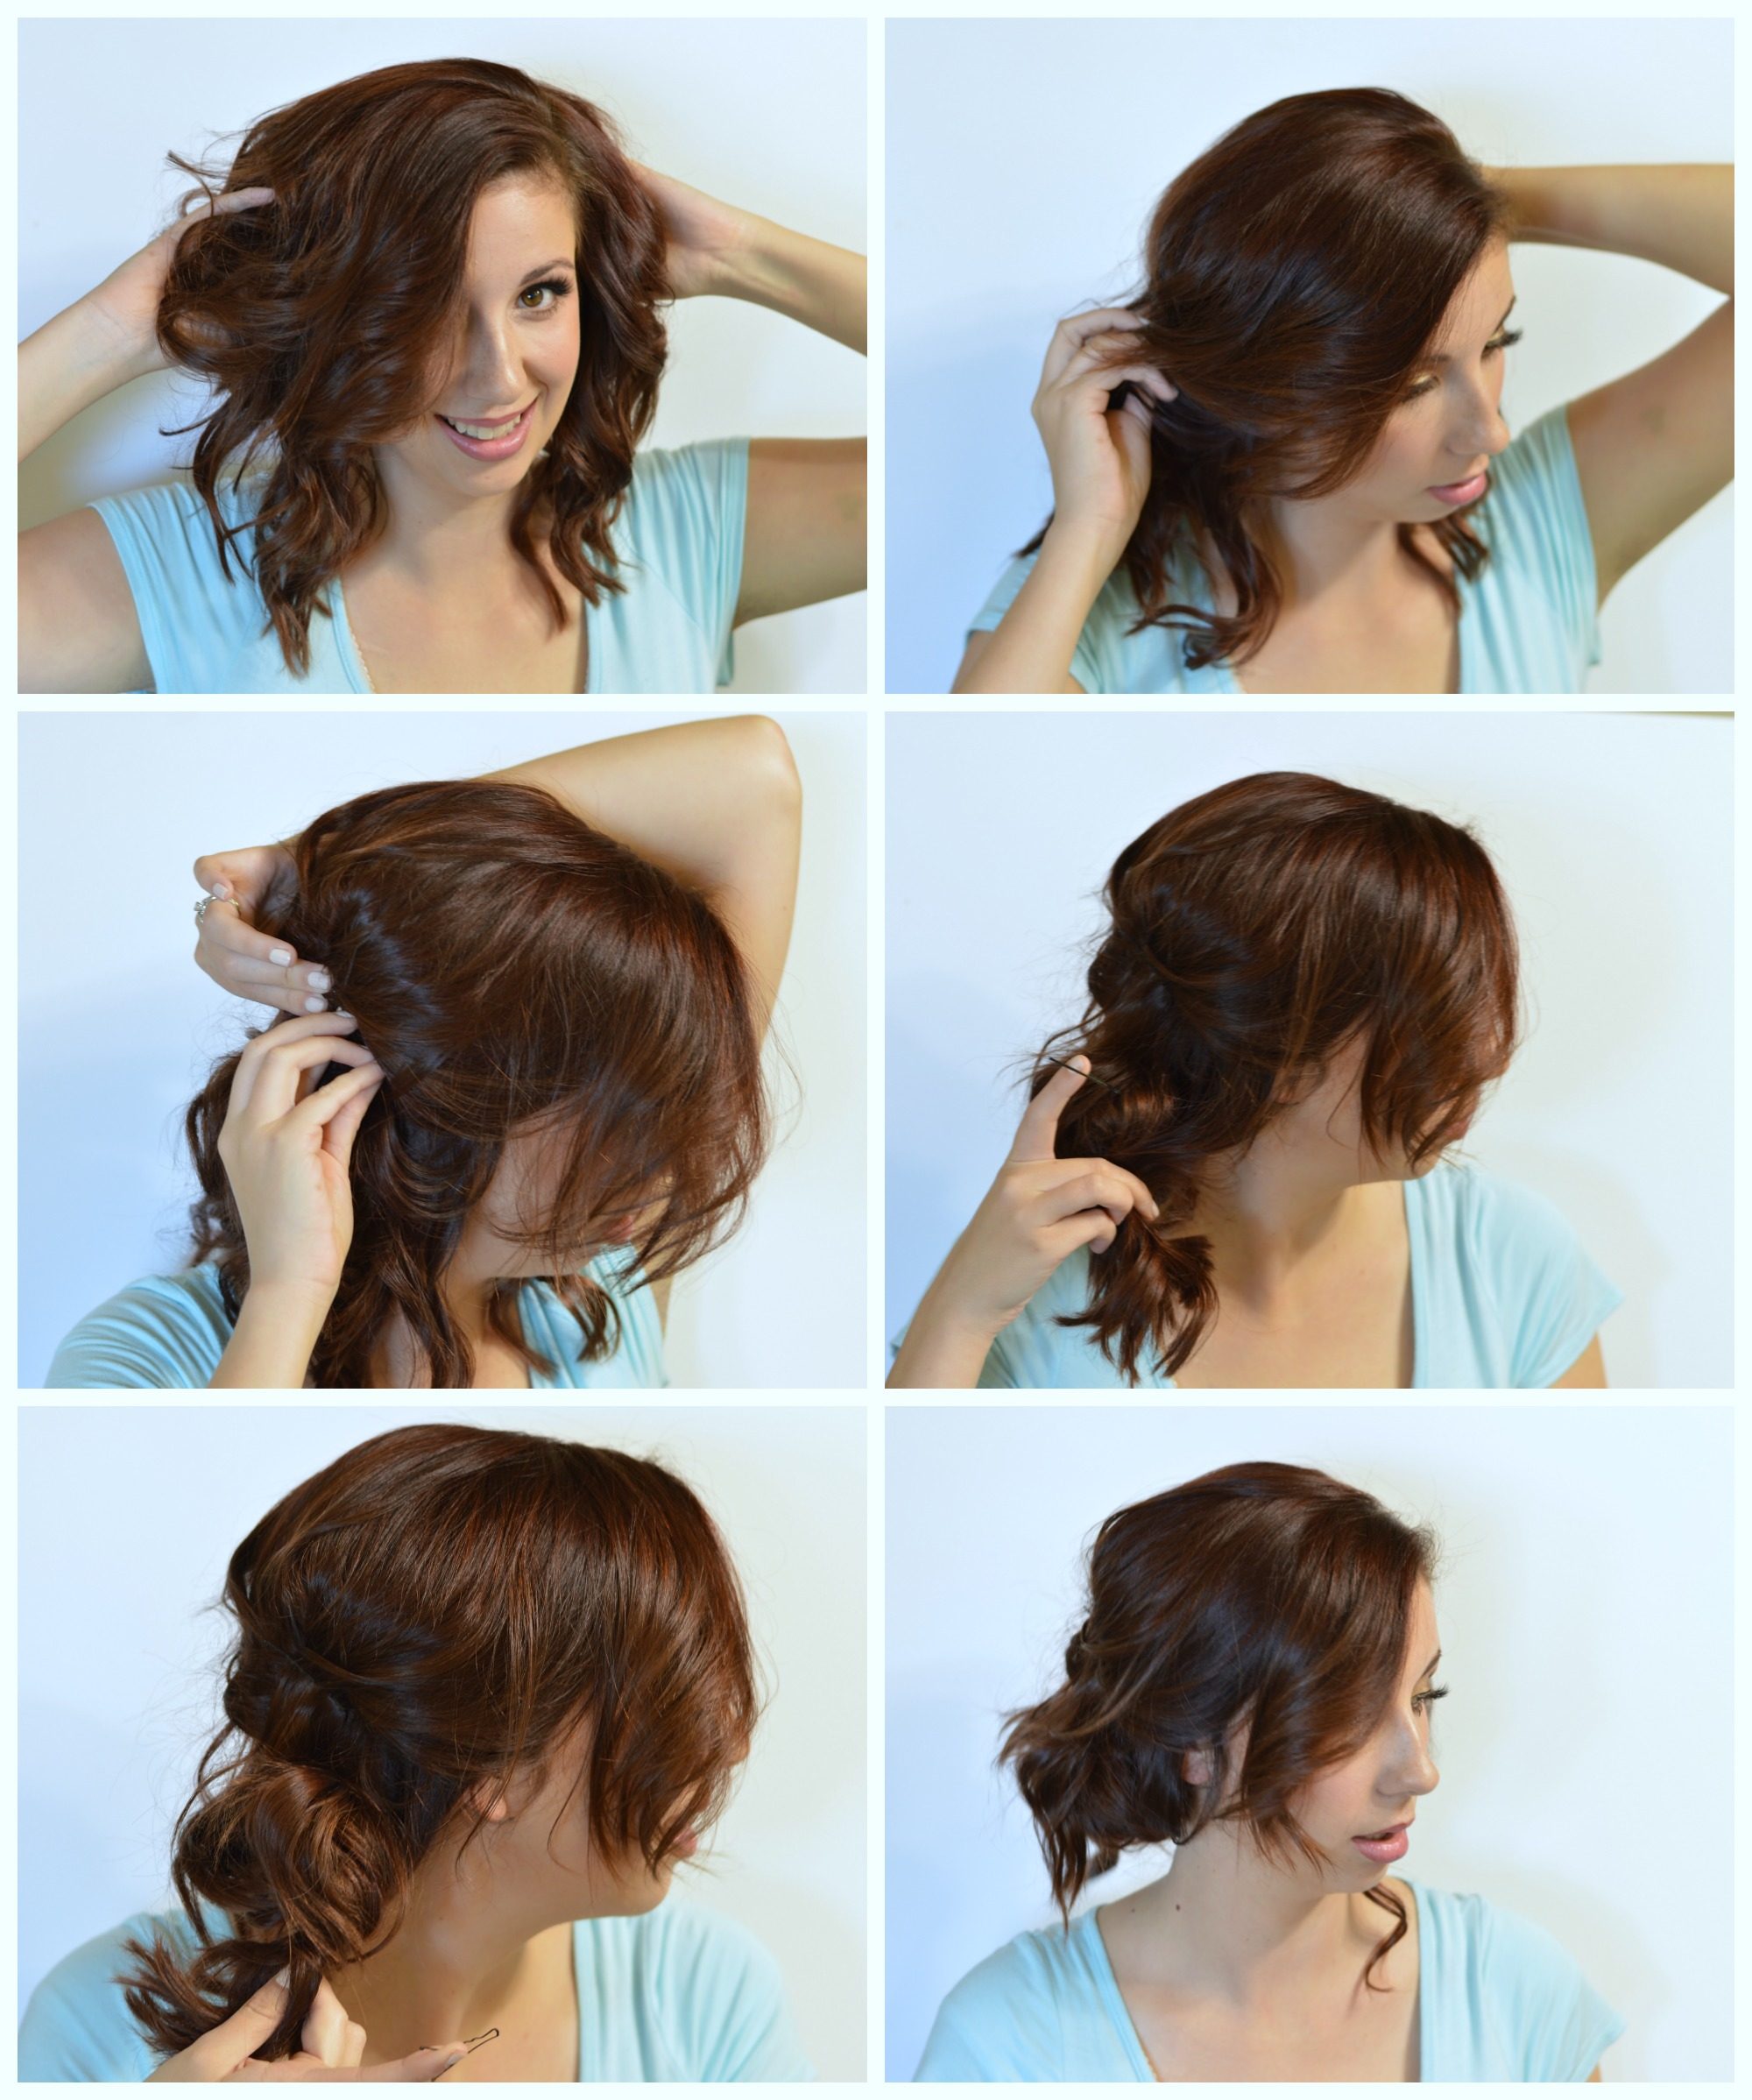 Easy curly updo for day 3 curls! Click here to check out how to get this updo with 4 bobby pins! #ad #rethinkyourcolour // Hey There, Chelsie